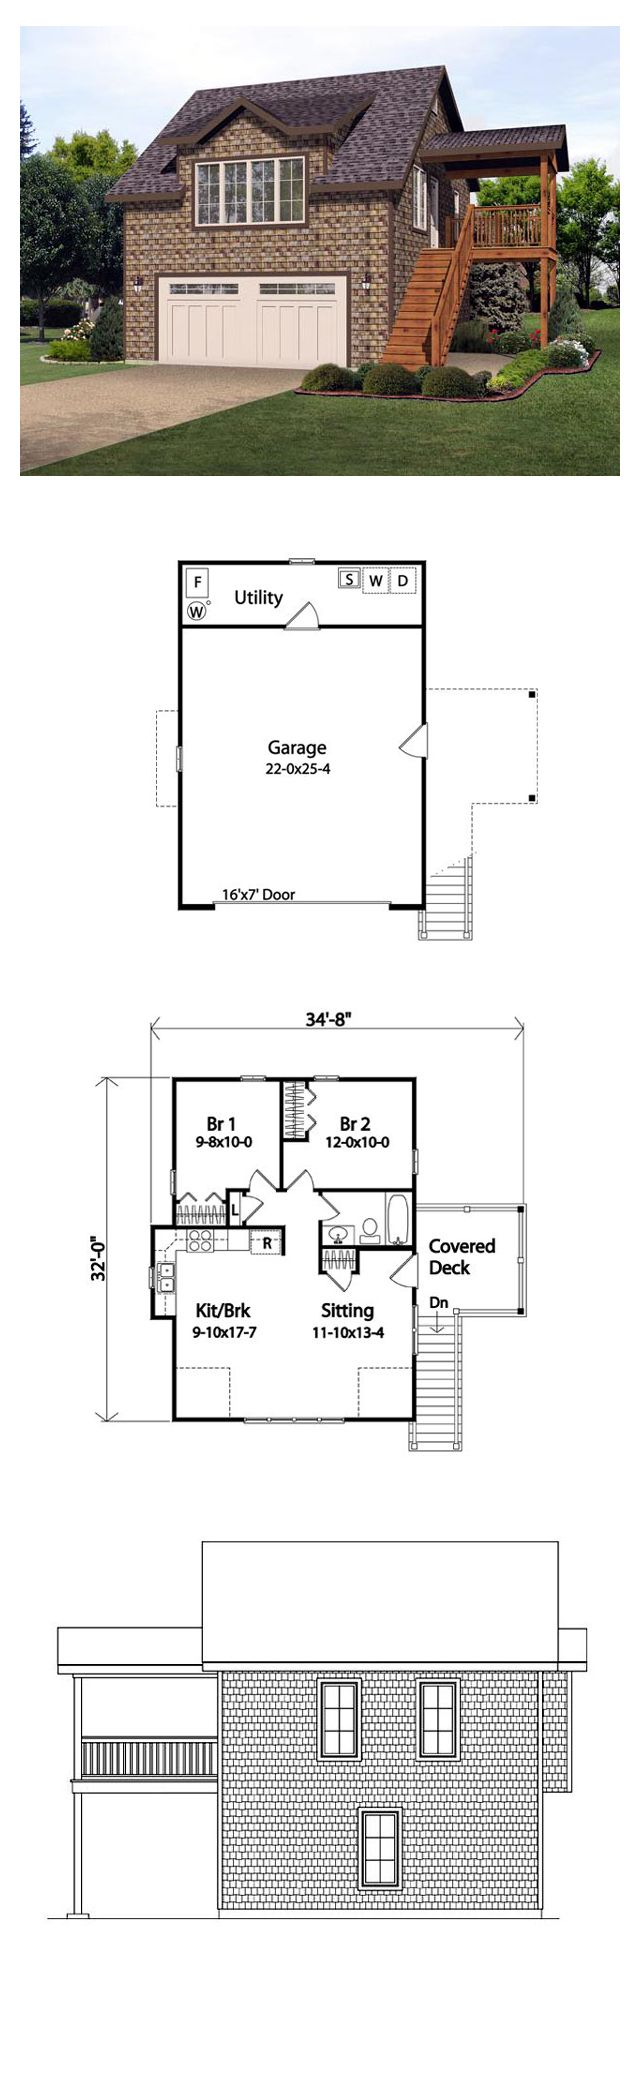 Garage plan 45121 total living area 881 sq ft 2 for 2 bedroom 2 bath garage apartment plans